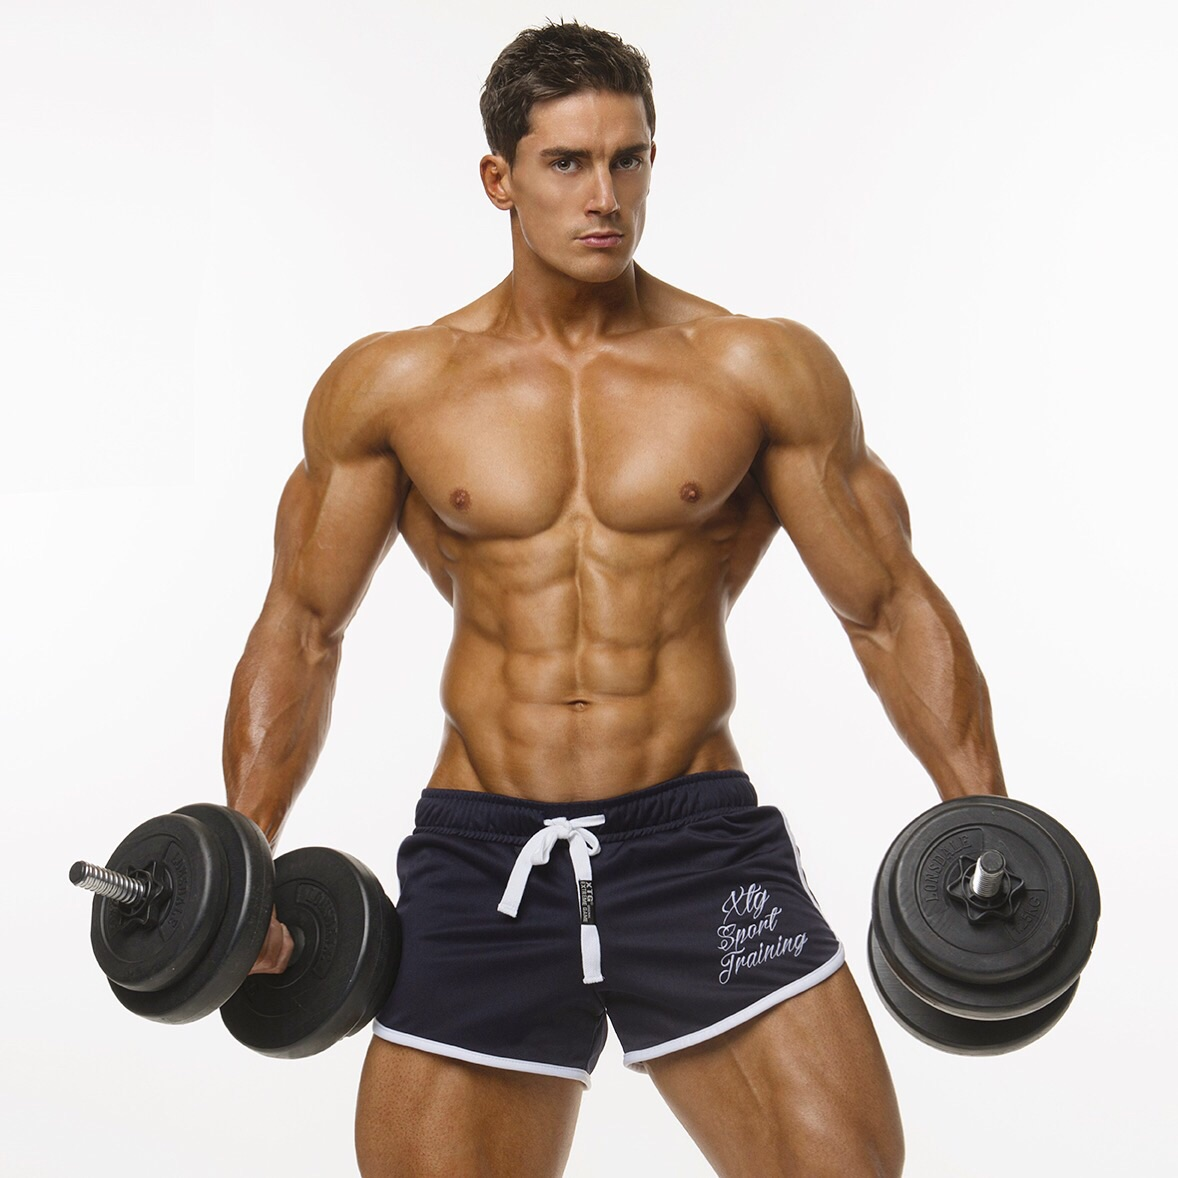 Martin S in studio holding two dumbbells and flexing upper body